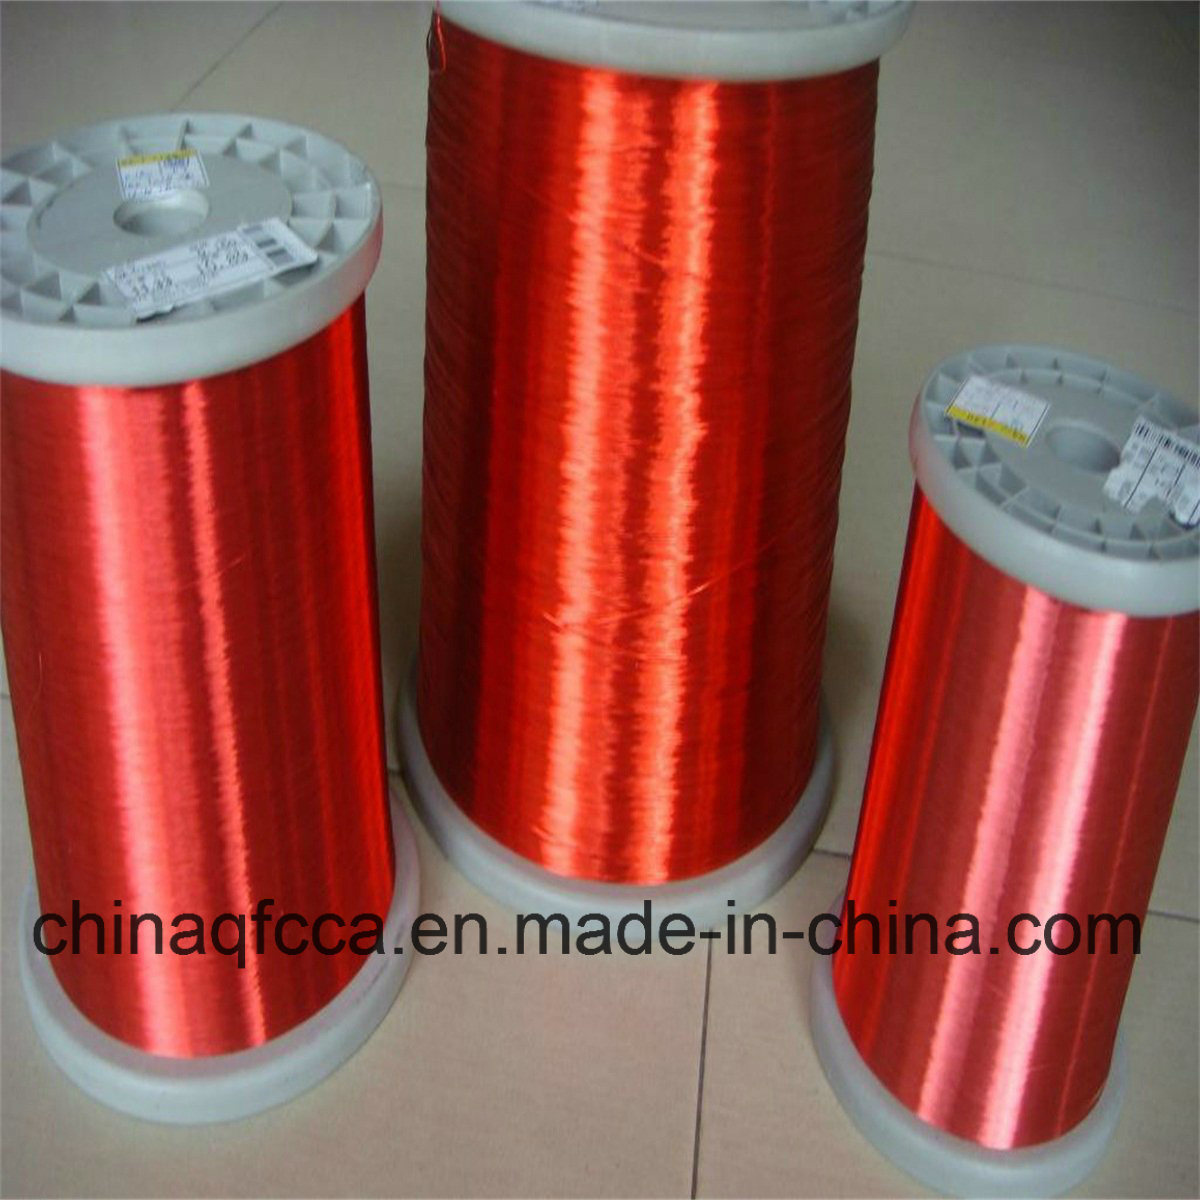 Enameled Aluminum Round Winding Wires